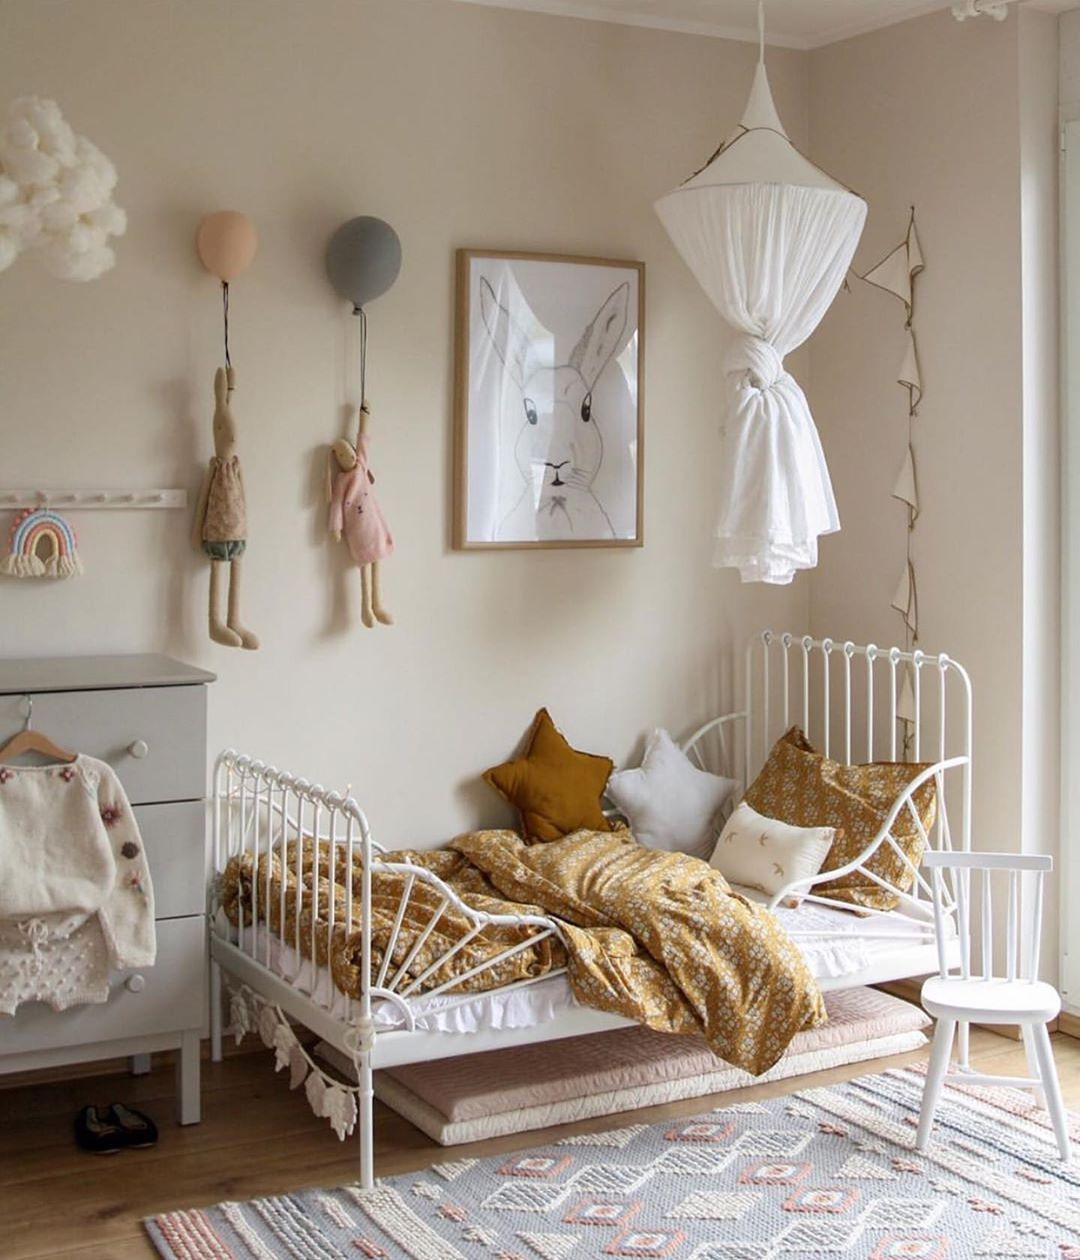 We just love this gorgeous little girl's room by @peschkart 👈🏻😍 Featuring the popular Maileg soft bunnies, we're now offering 20% off all Maileg toys, use code: MAILEG20 💫 . #kidsroom #kidsdecor #kidsroomdecor #kidsroominspo #kidsinterior #nordichome #nordicinspiration .